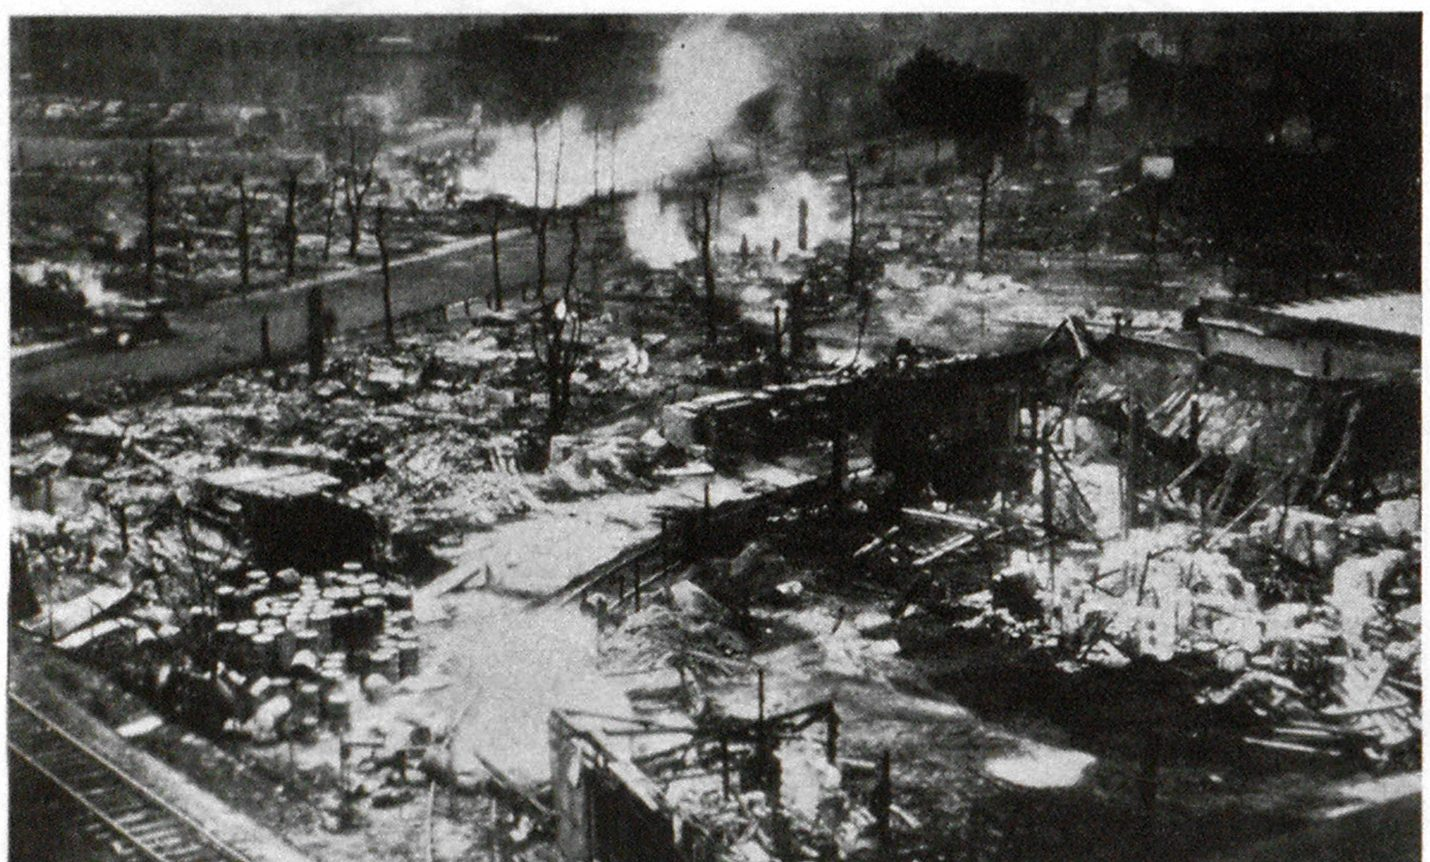 Partial View of Area Devastated in Clevelend's East Ohio Ges Co. Holocaust. Firemen Overhauling Ruins and Extinguishing Smouldering Fires.